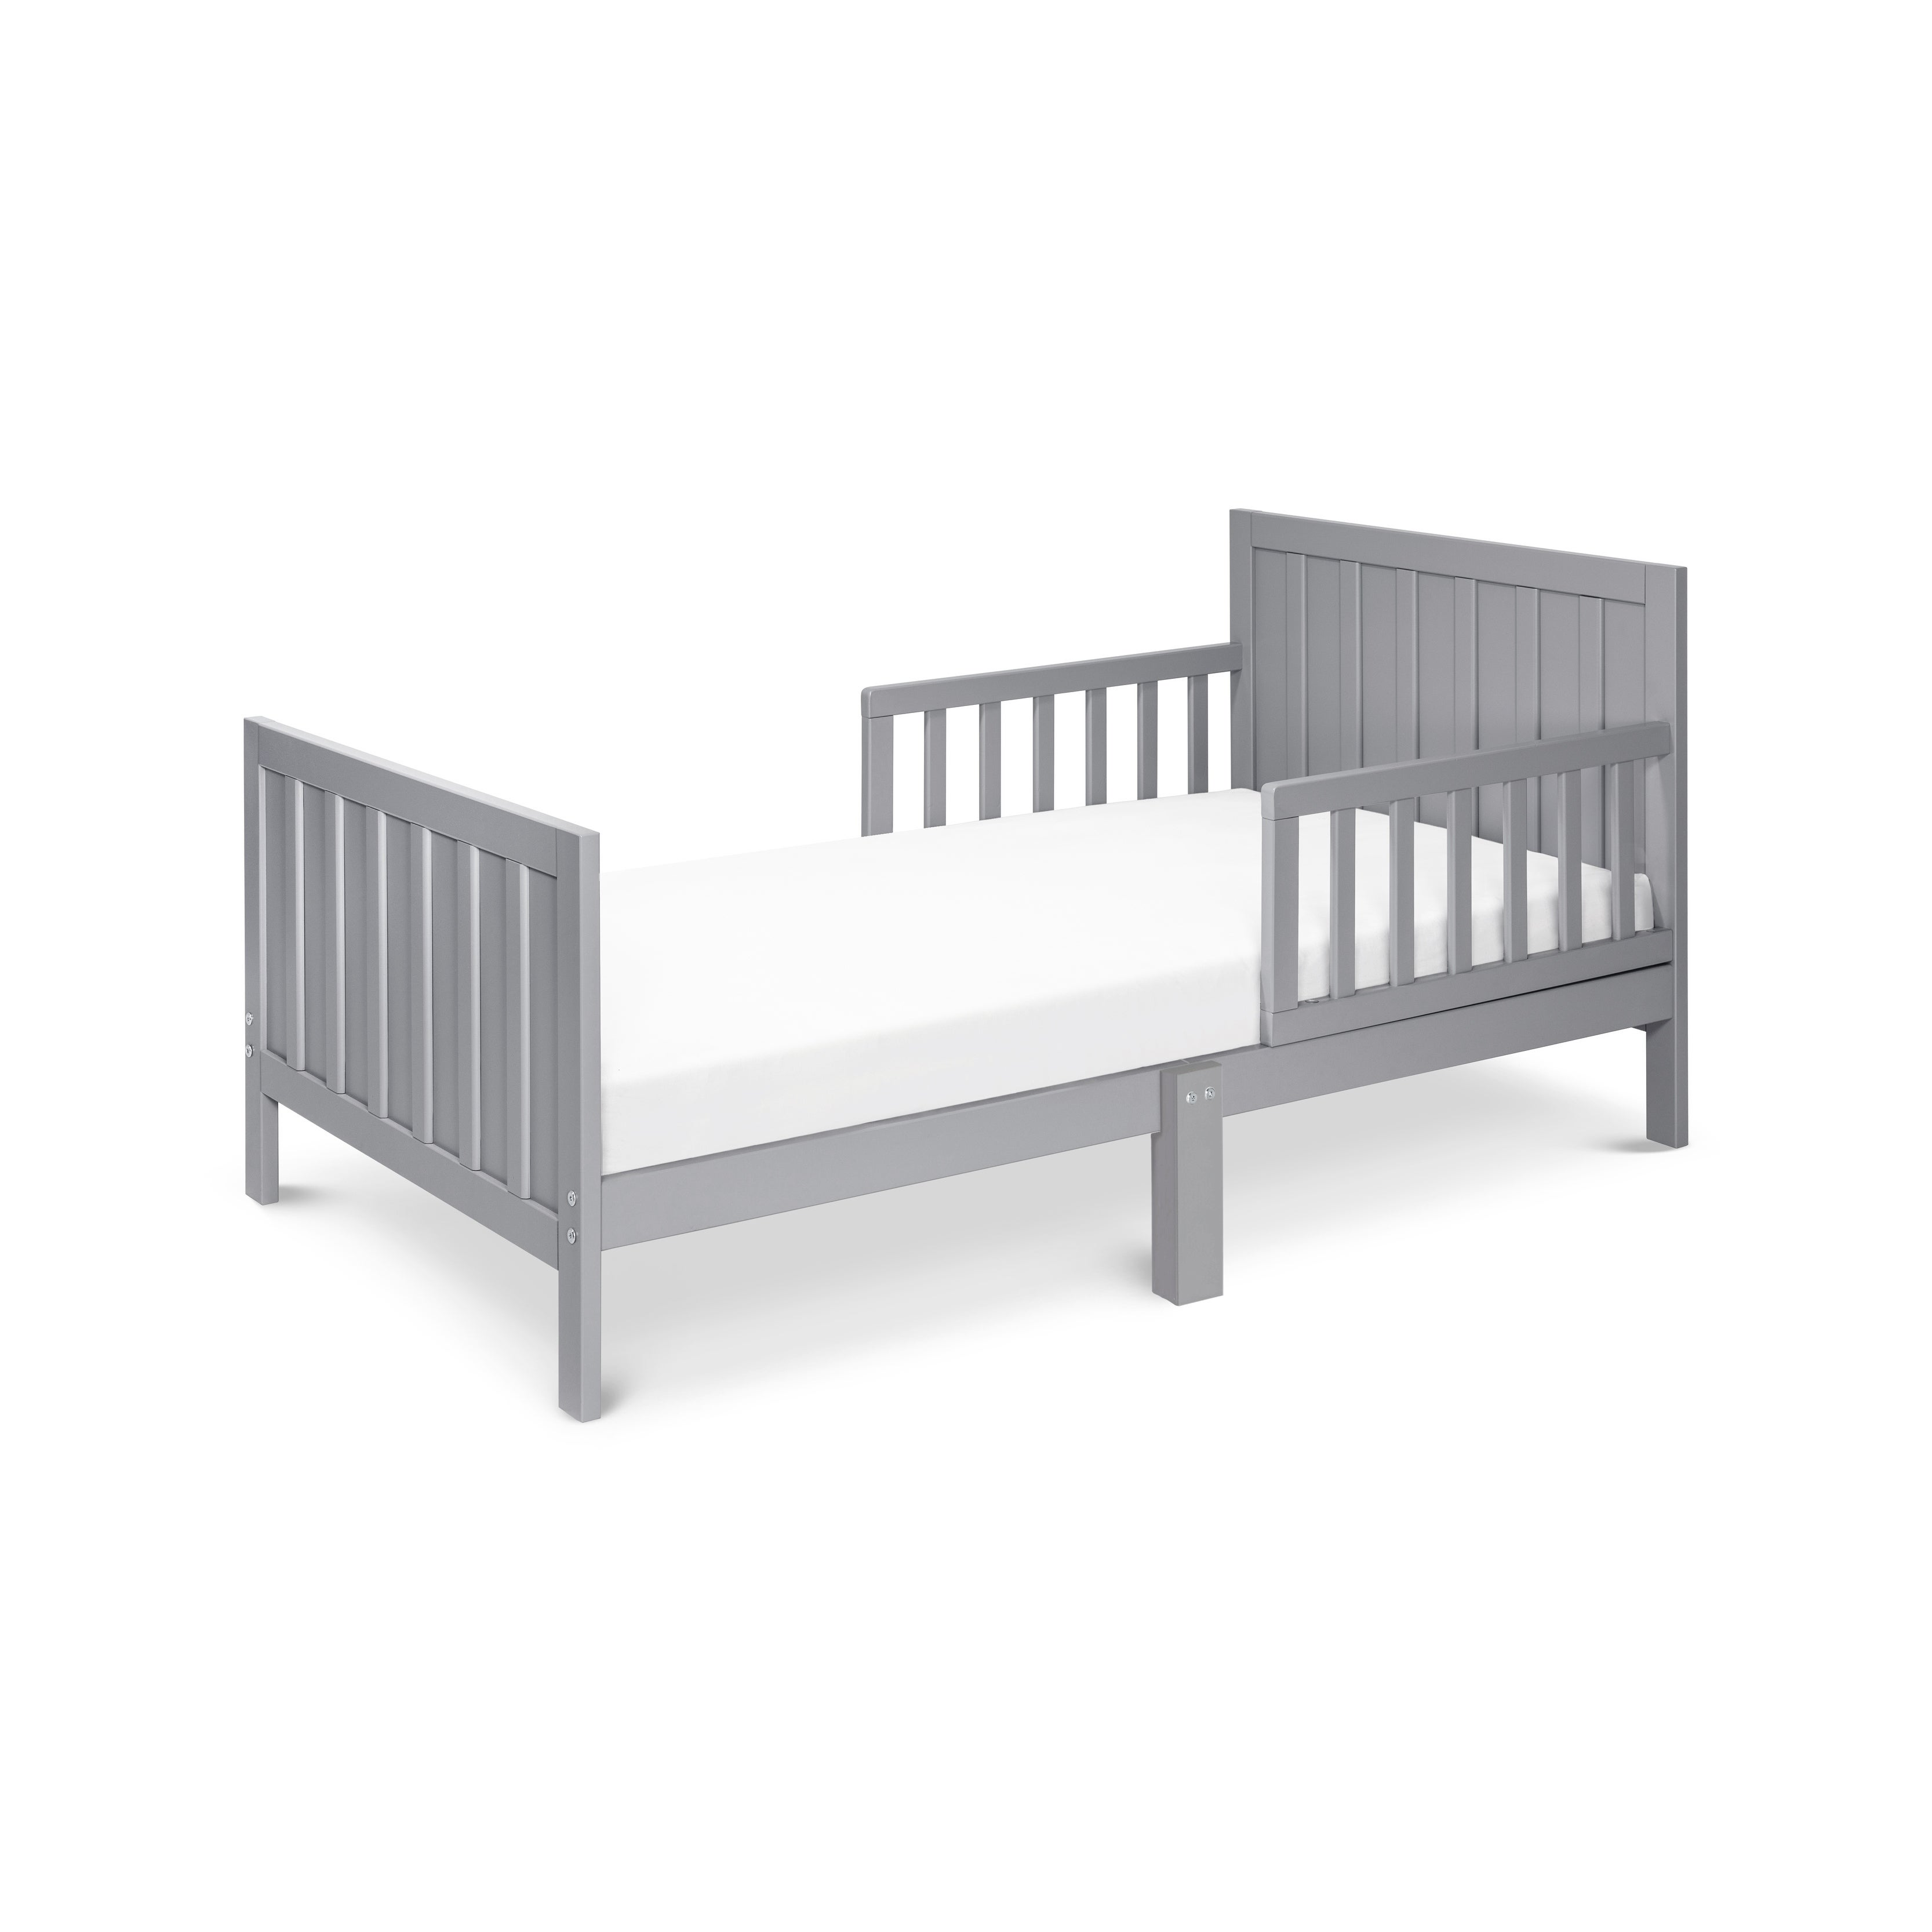 on sale 0f580 ccaae Carter's by Davinci Benji Toddler Bed